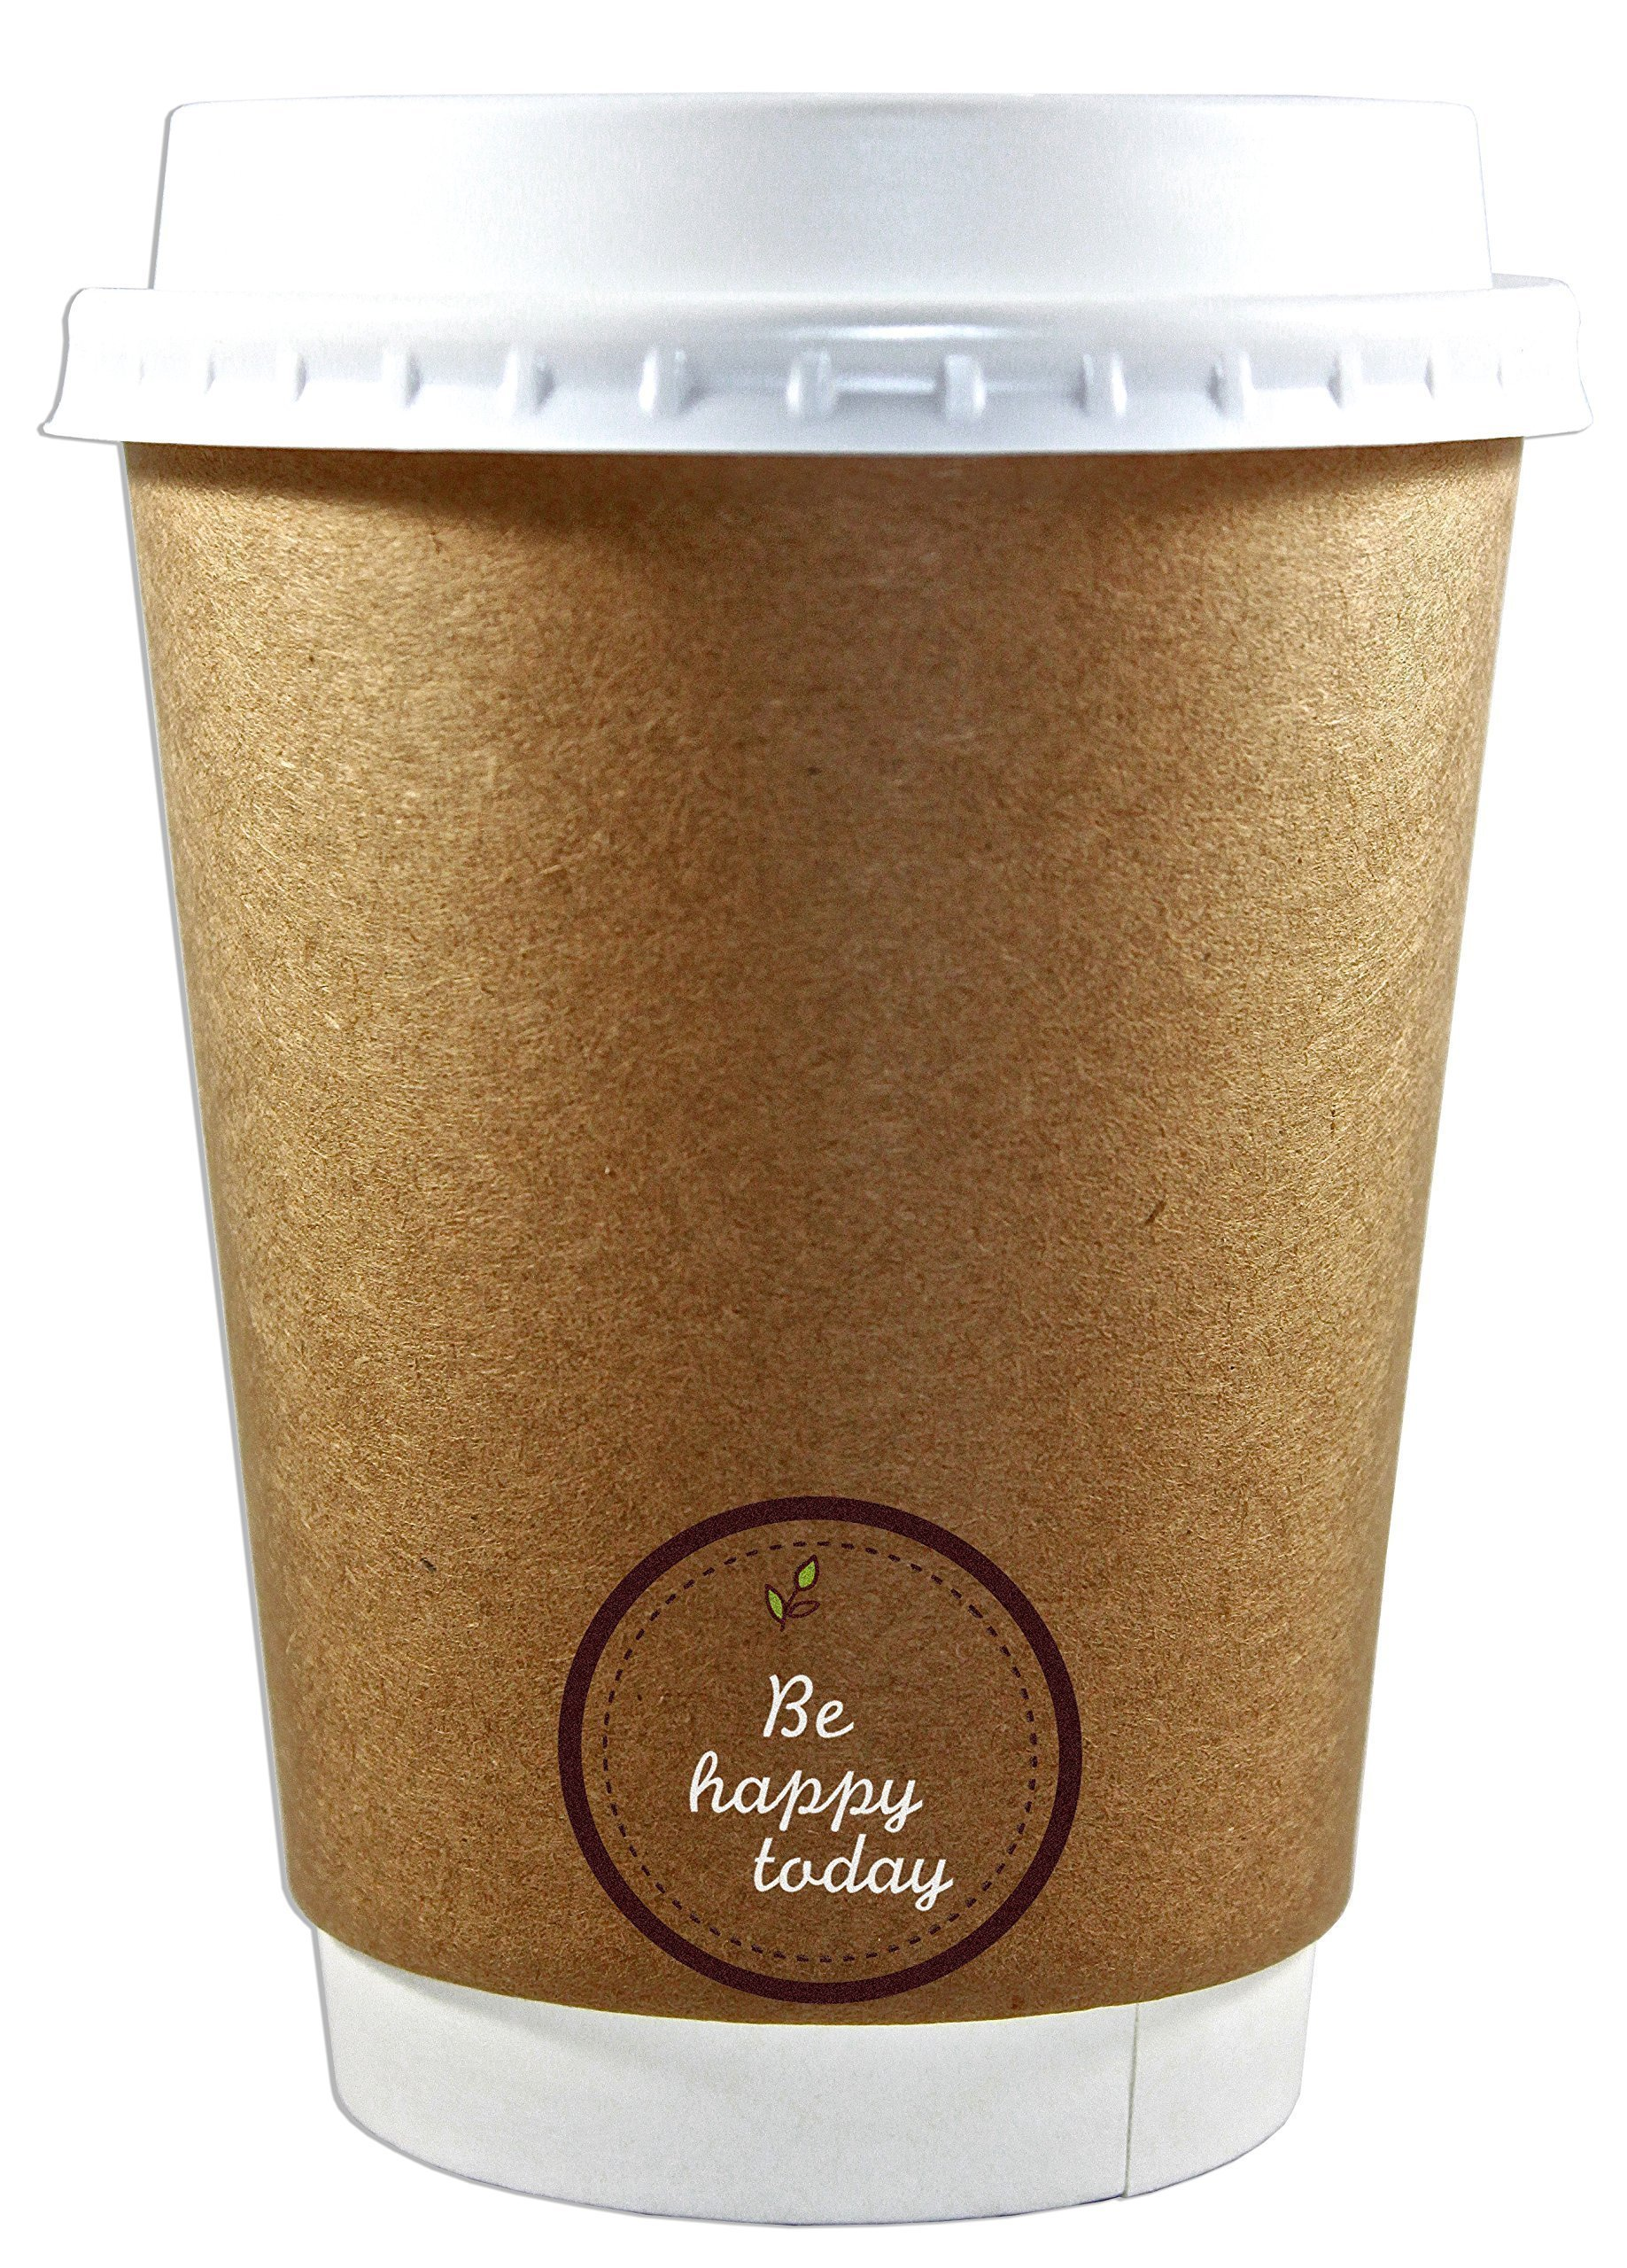 50 Premium Quality 12oz Disposable Paper Coffee Cups with Lids, Insulated Double Wall-No Sleeves Needed-Leak Proof, Eco Friendly,Perfect for Hot & Cold Drinks in Office,Home,Travel,Party&more